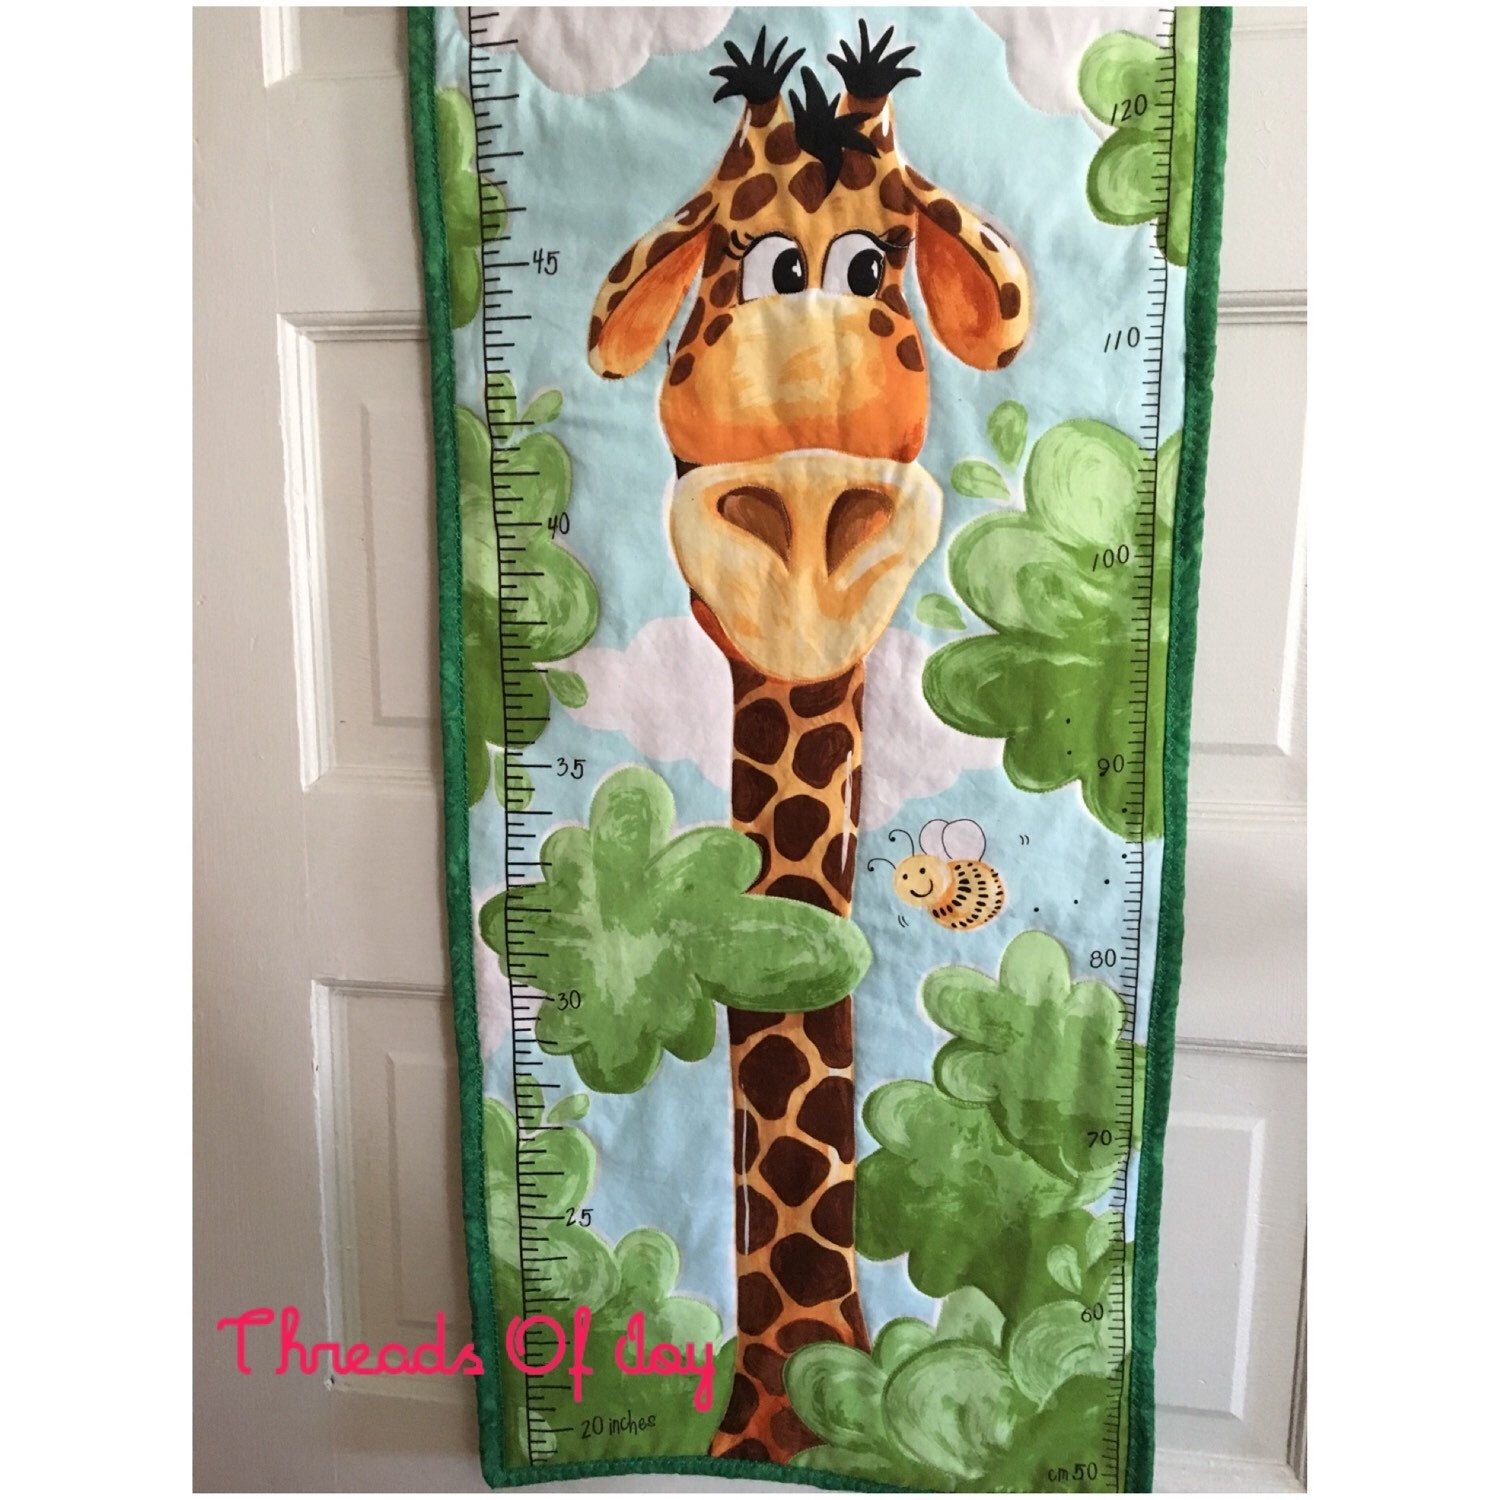 Children's growth charts hang one in their bedroom and make wonderful memories. A keepsake you will always treasure!!